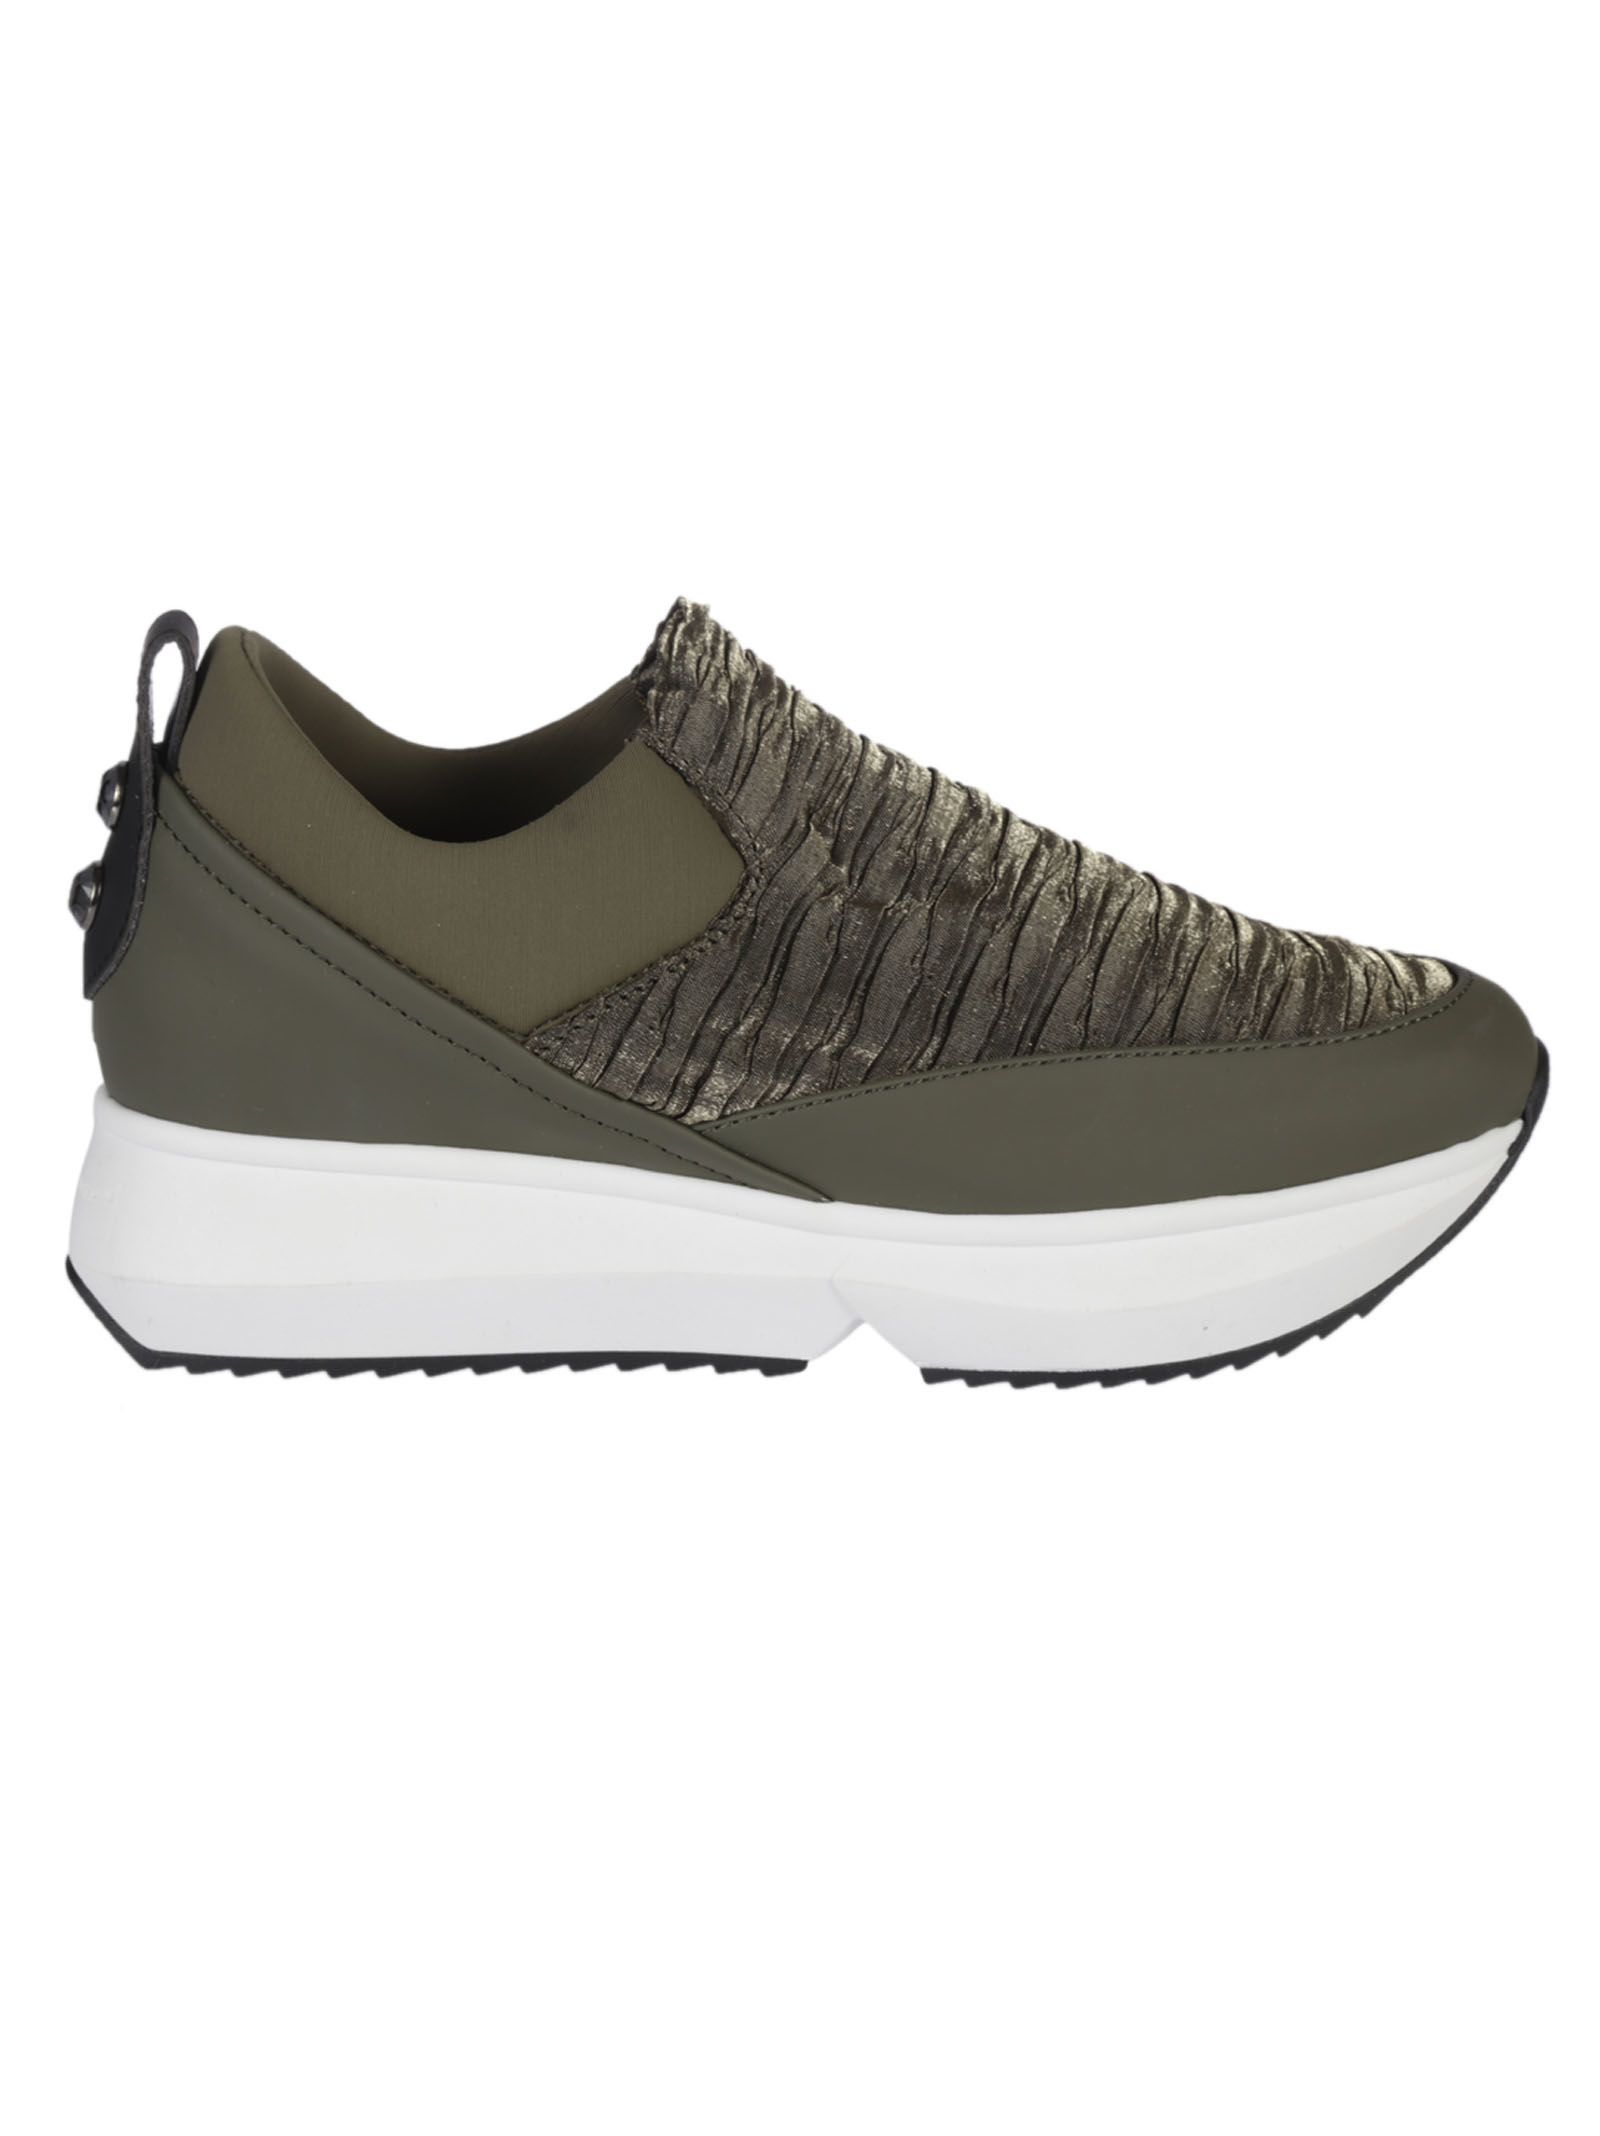 Alexander Smith London Knitted Sneakers